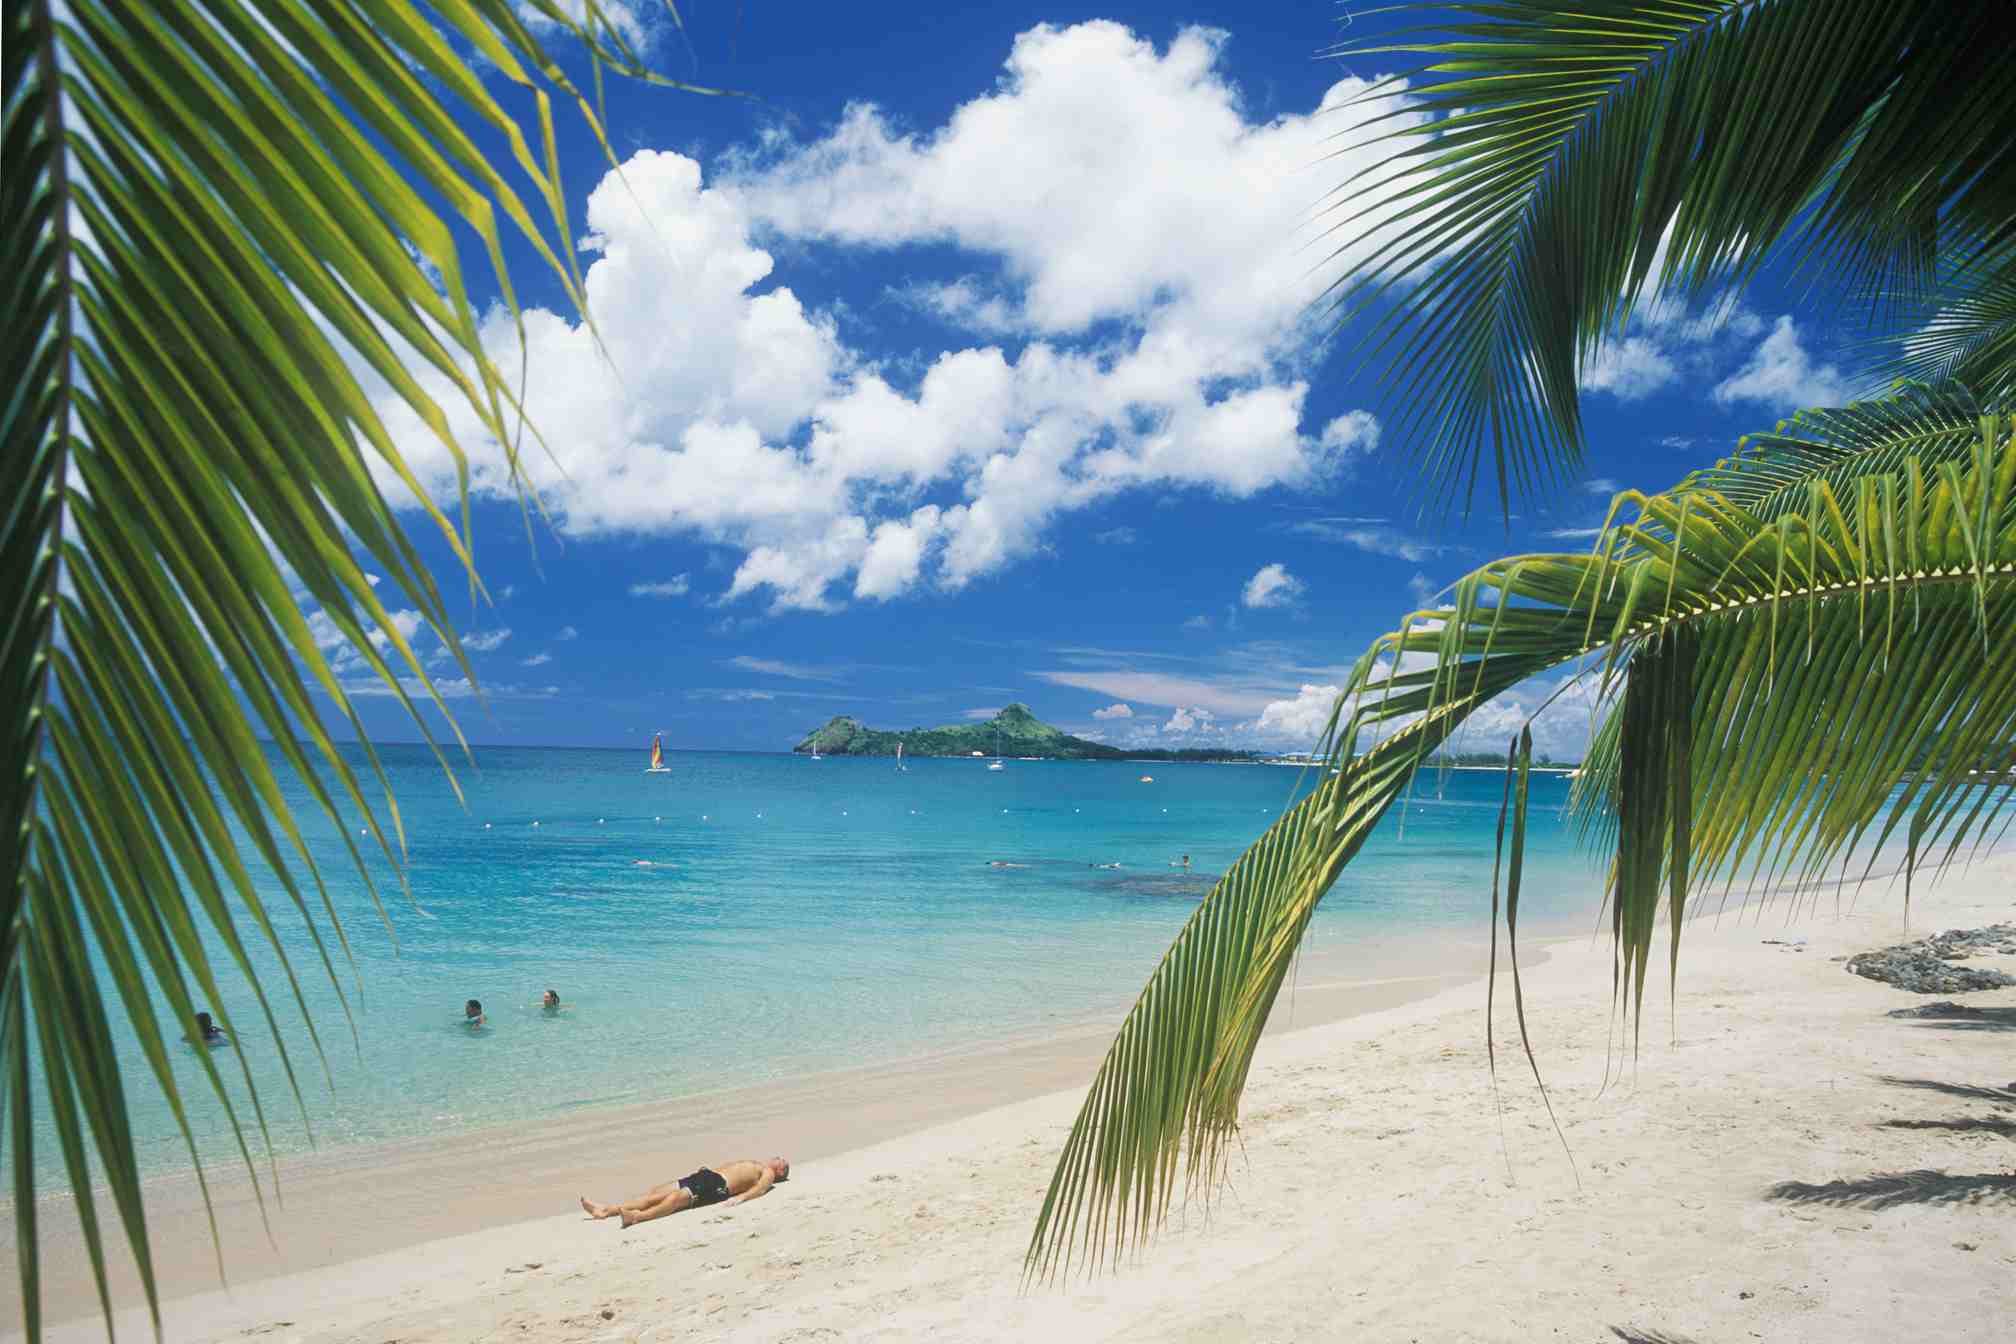 People swimming and sunbathing on Reduit Beach in St. Lucia